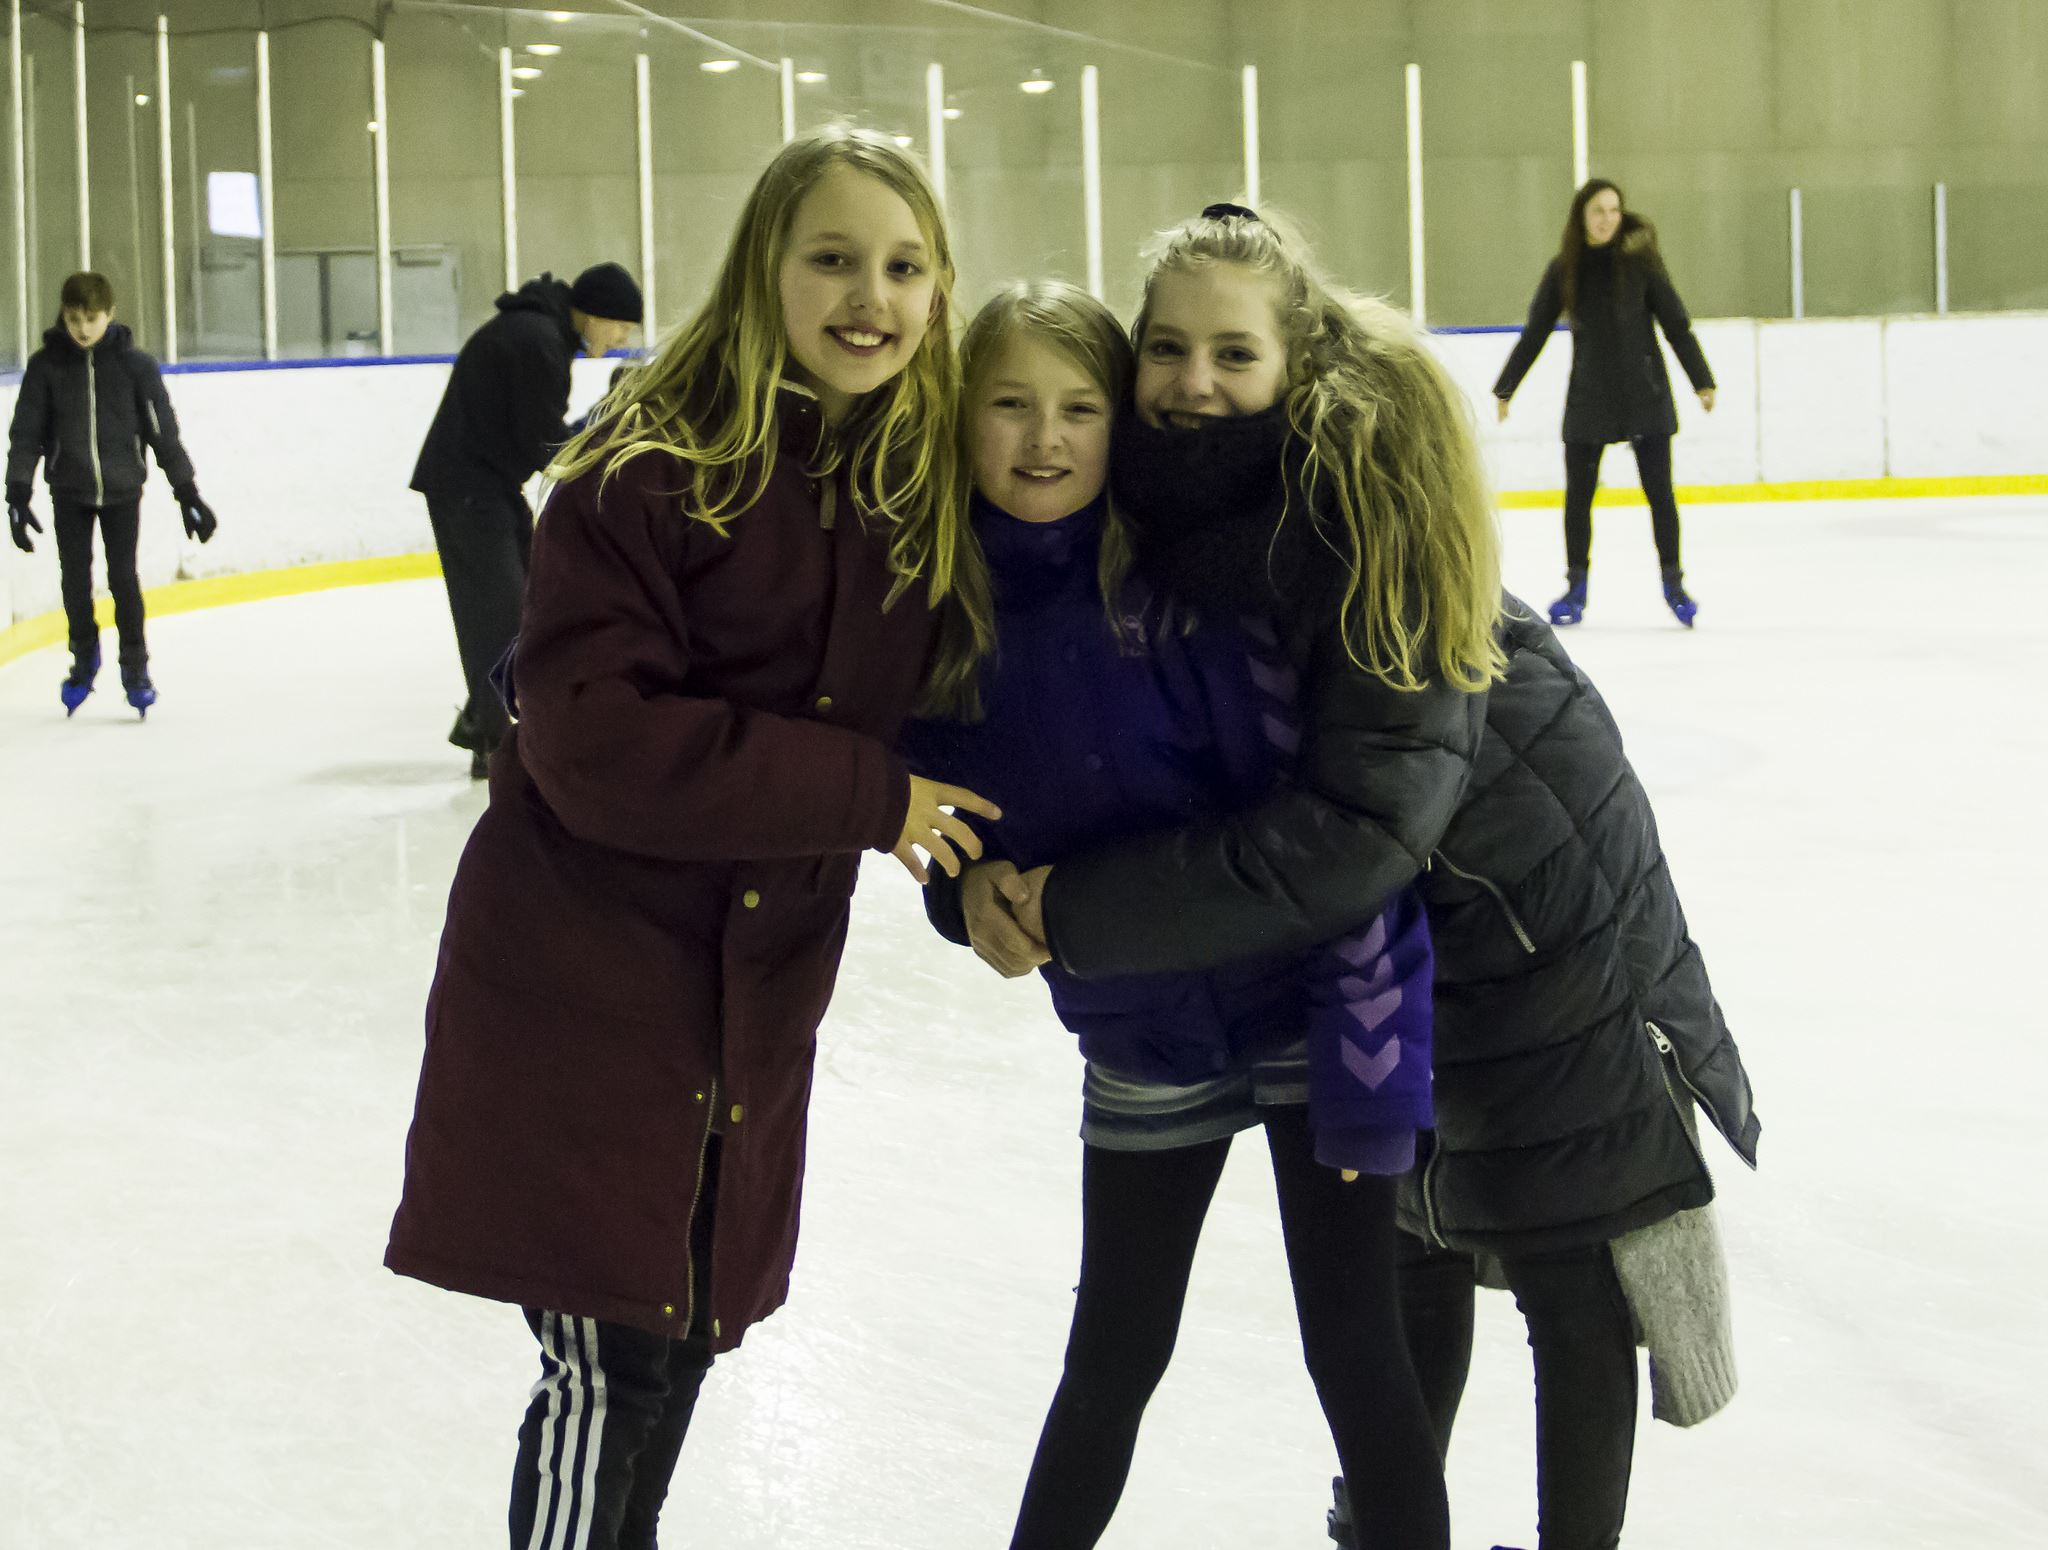 Ice skating with family and friends